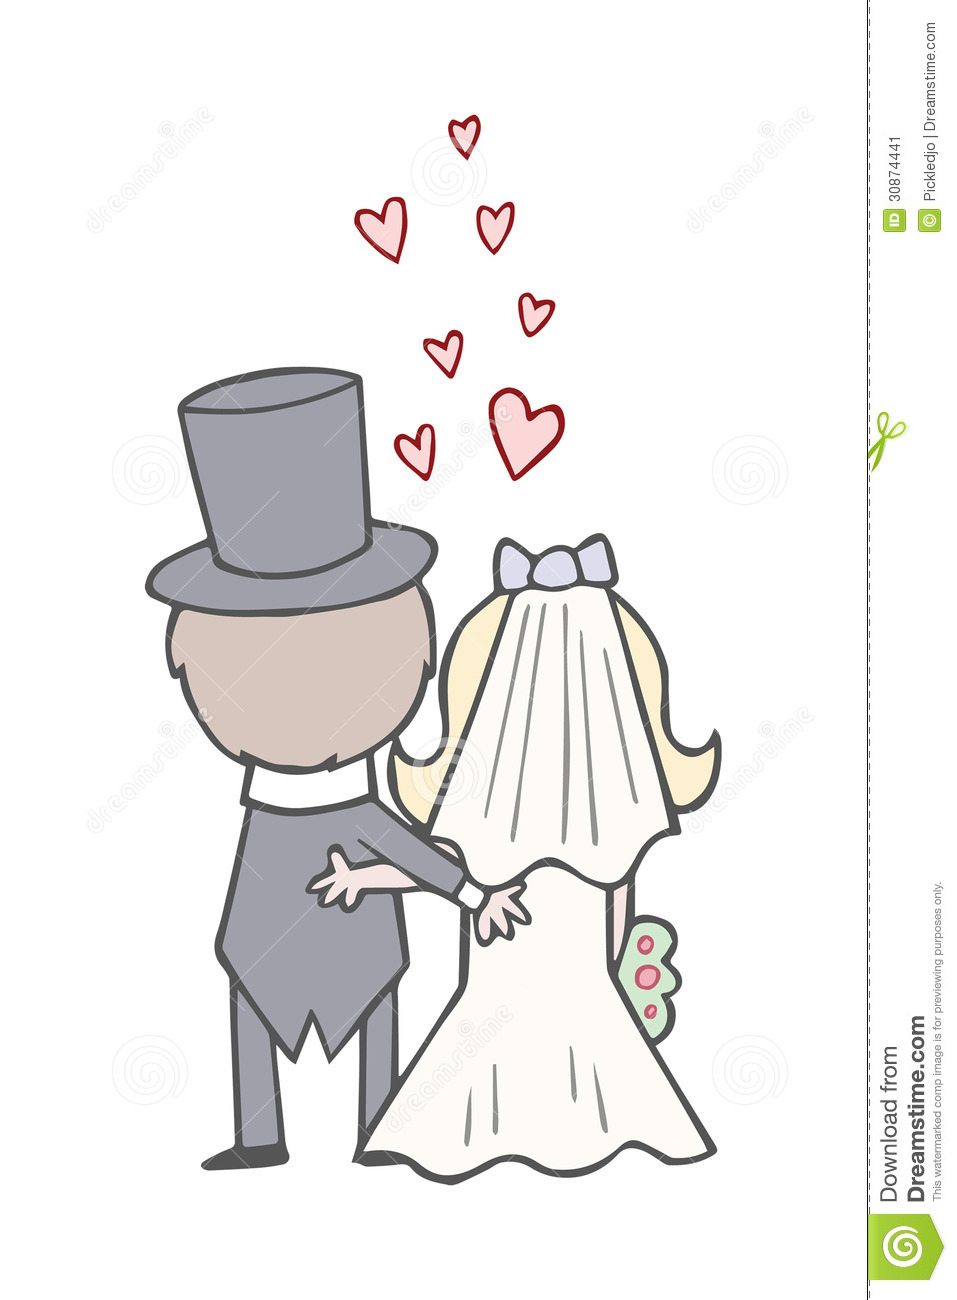 Bride cliparts cute and. Bridal clipart wedding day